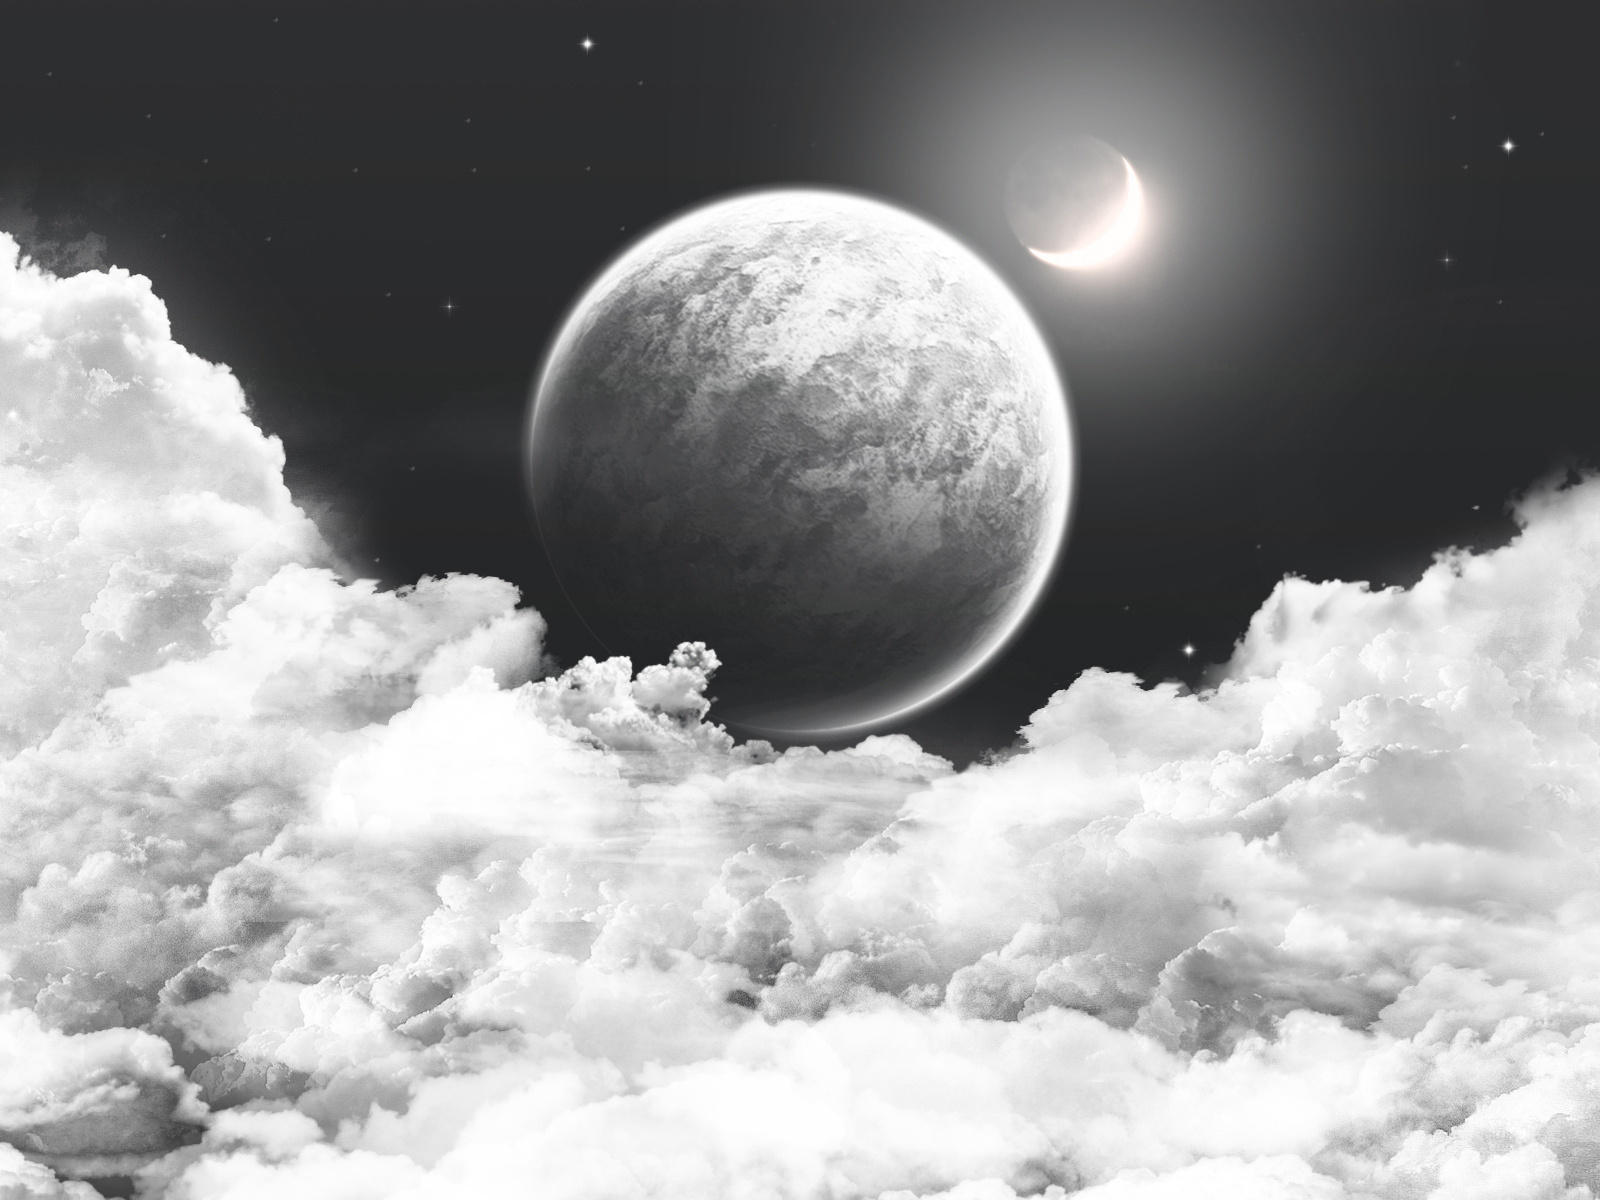 space wallpaper, clouds, moon